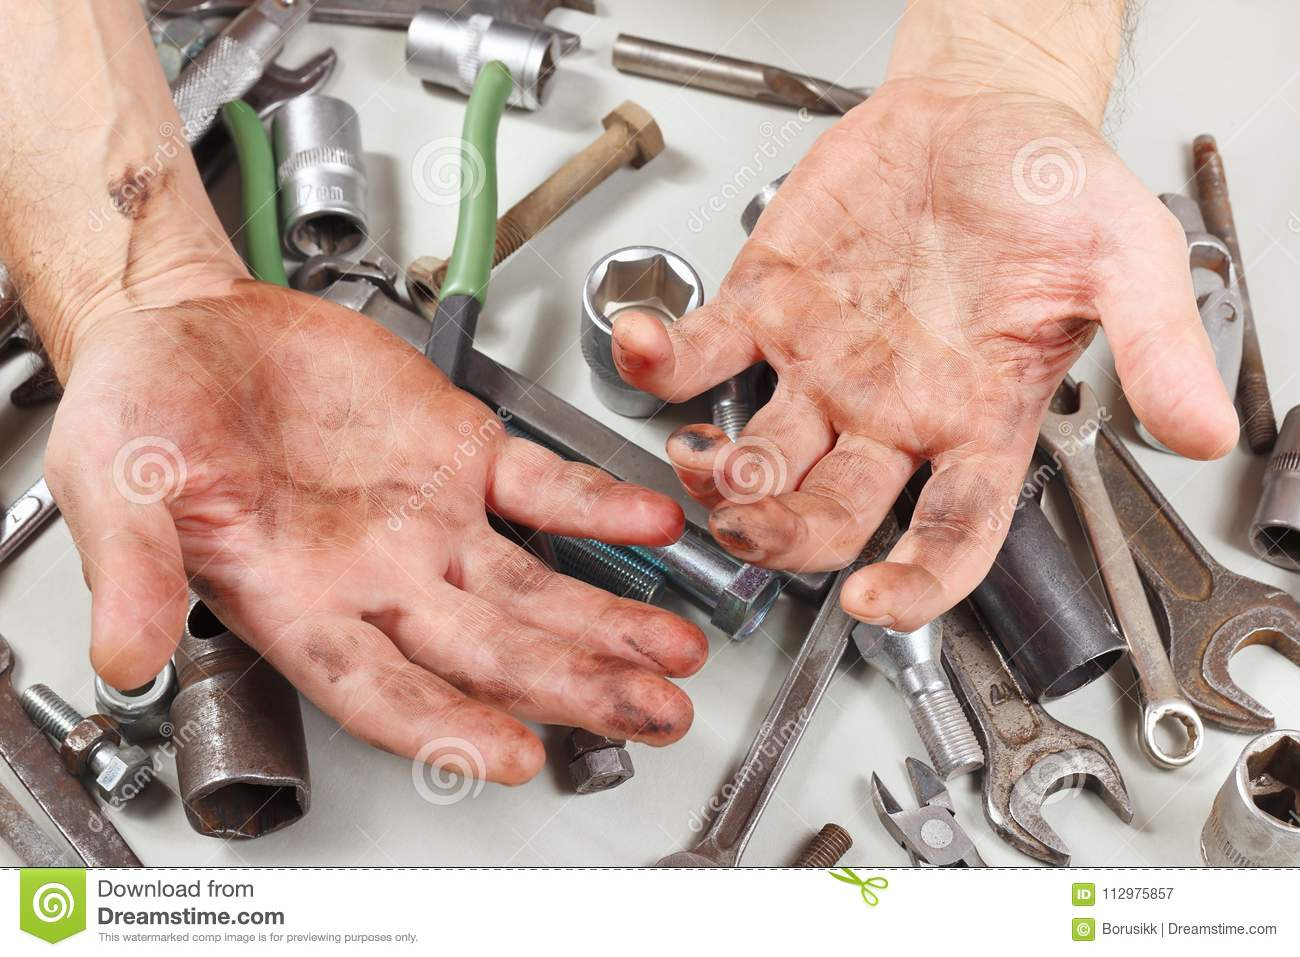 Dirty hand of serviceman behind his work in workshop